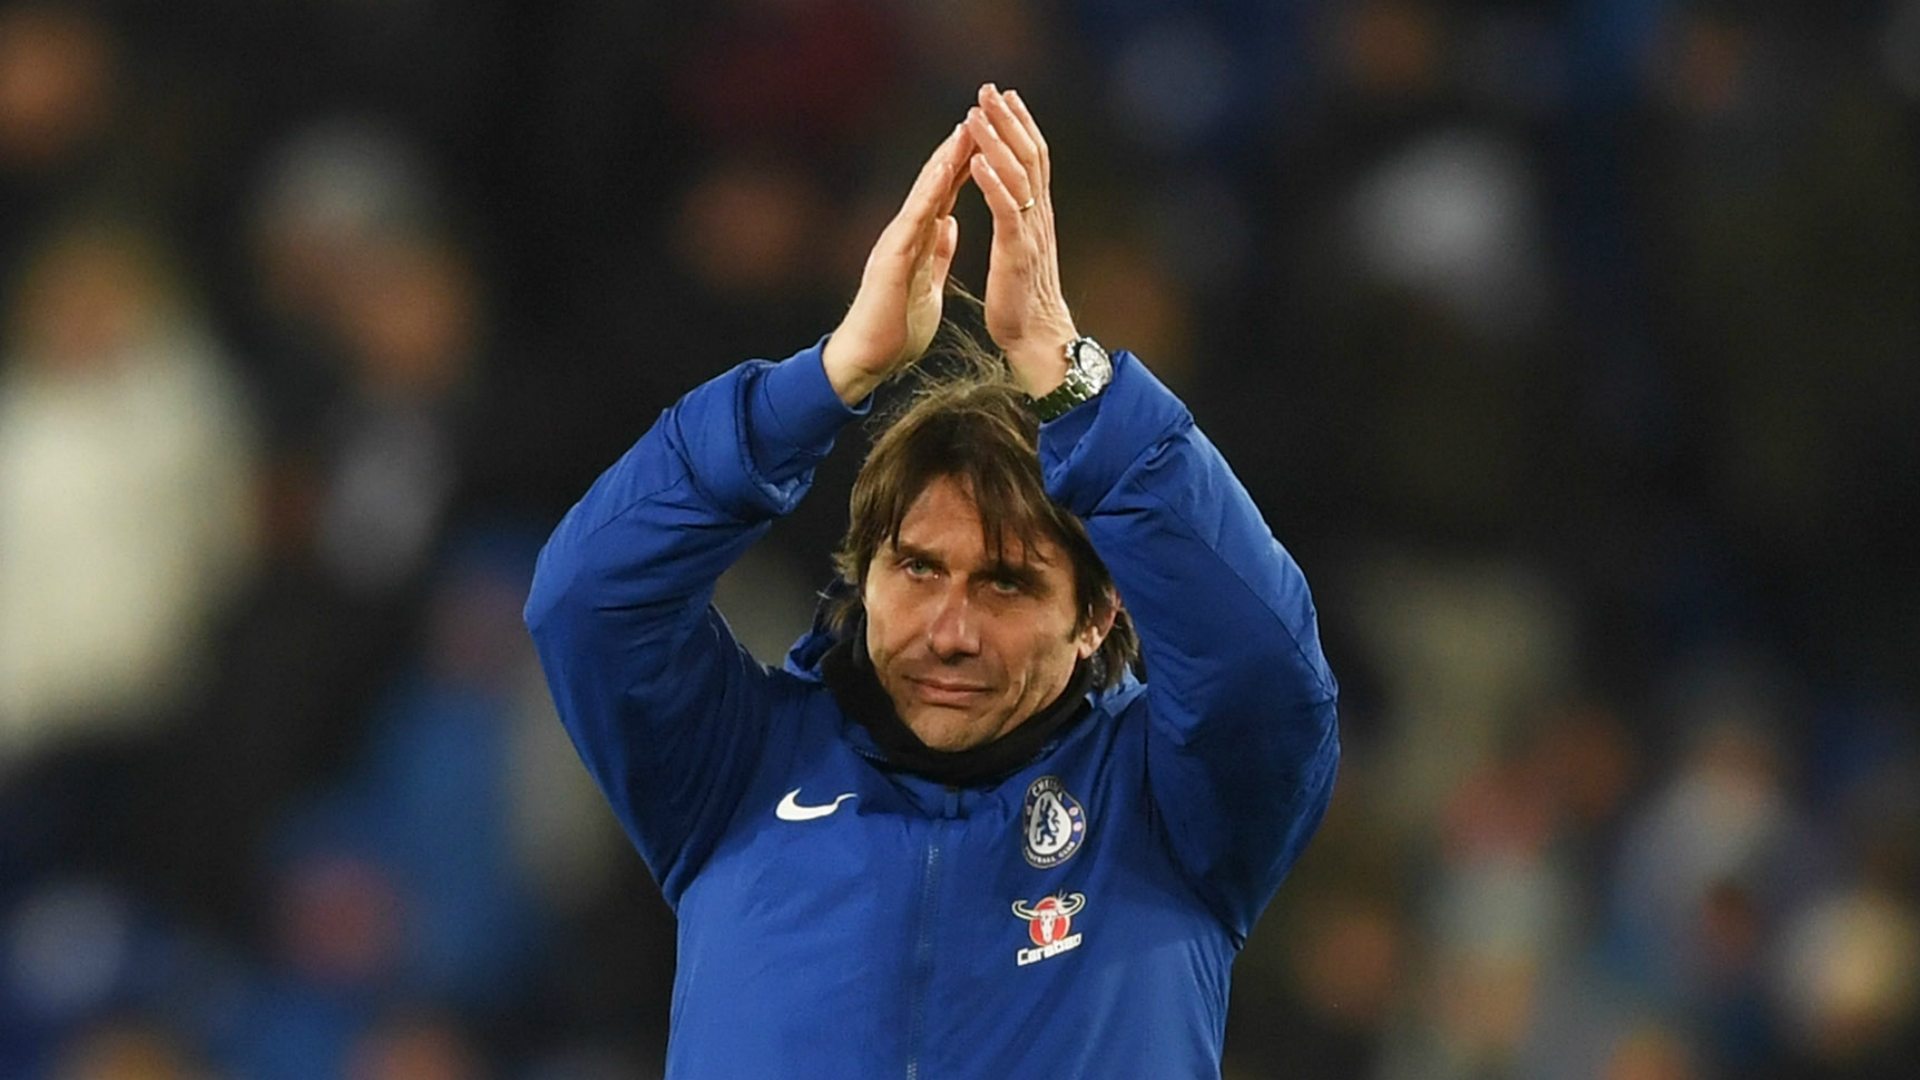 Chelsea boss Antonio Conte insists Tottenham can cope without Harry Kane